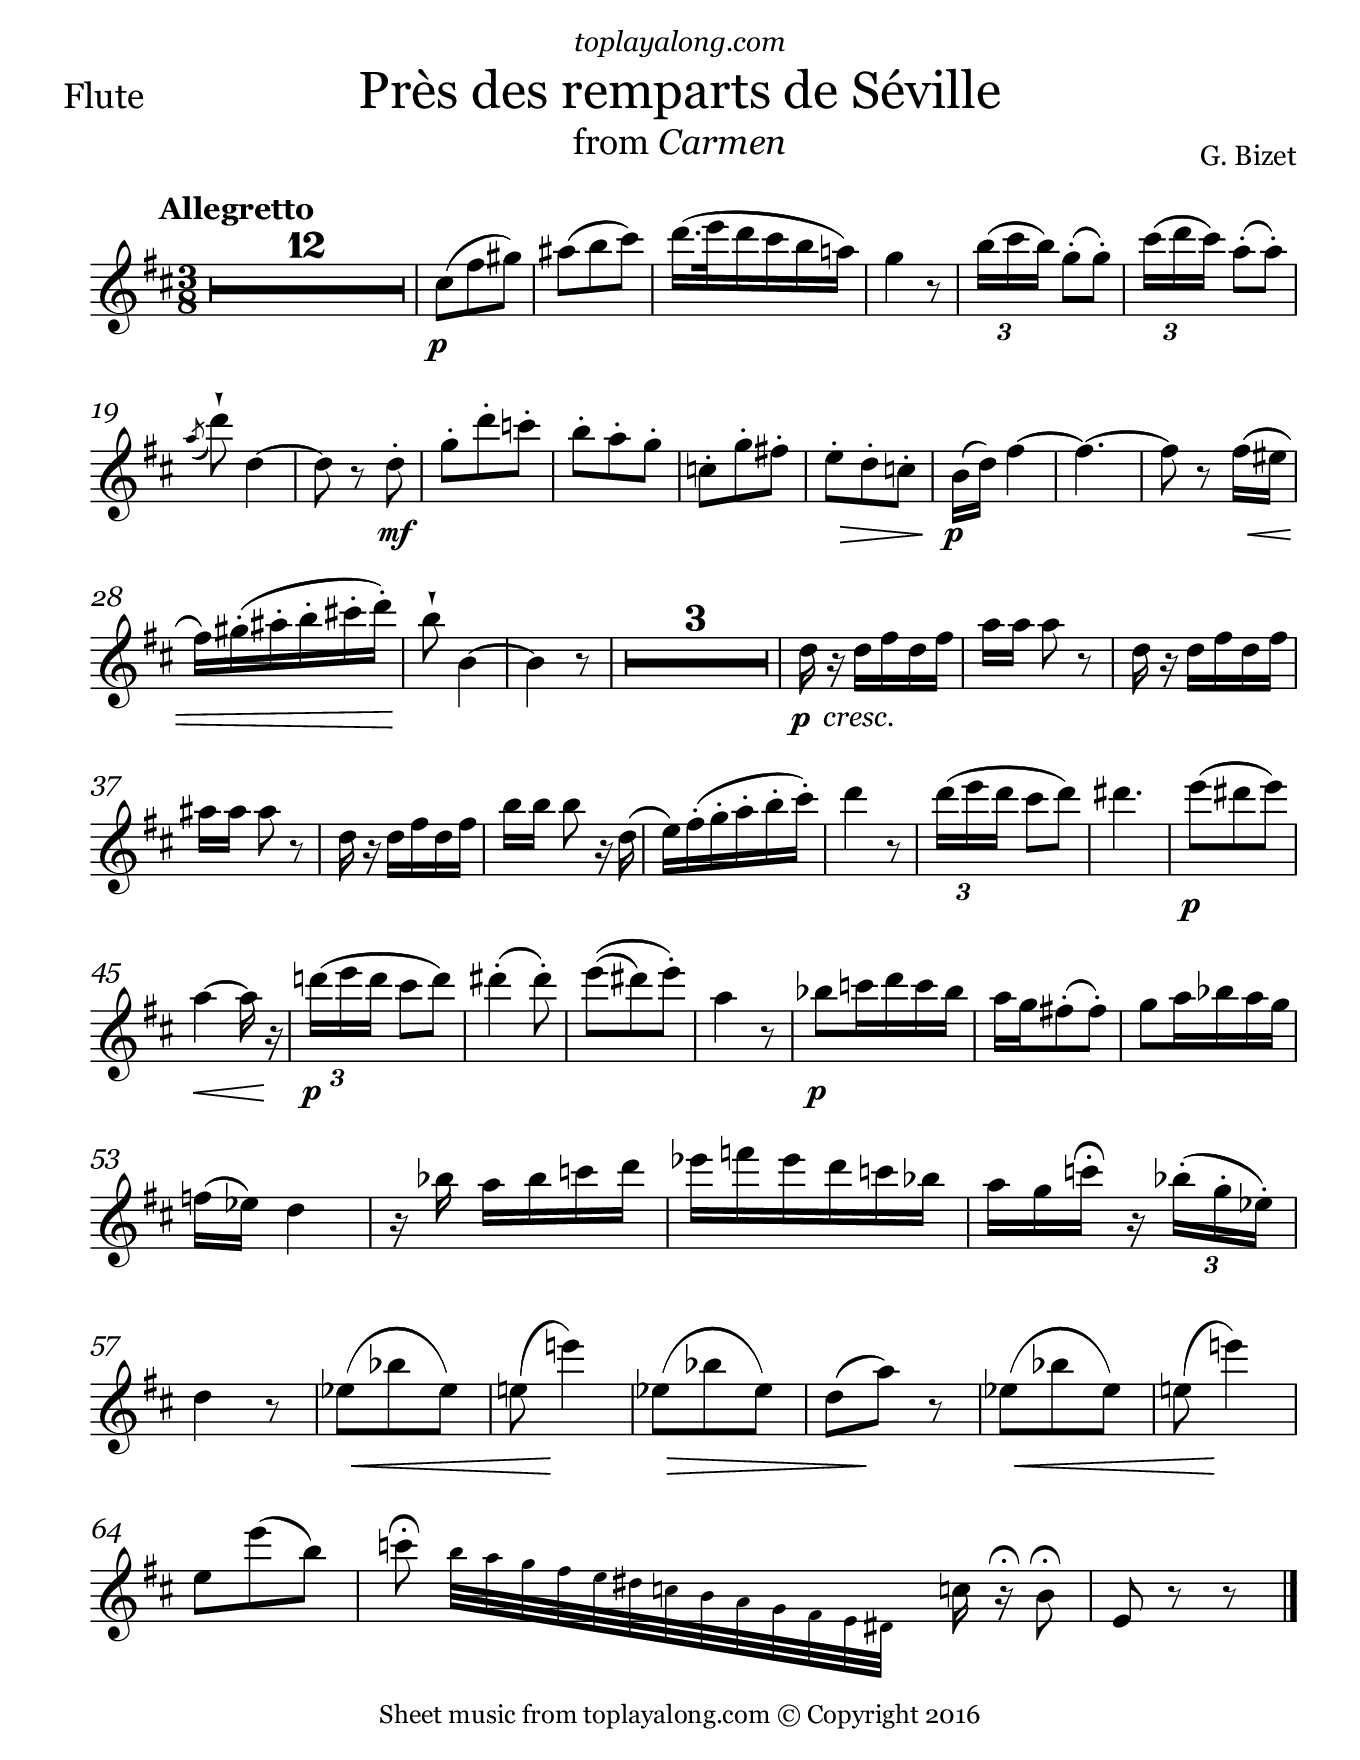 Près des remparts de Séville from Carmen by Bizet. Sheet music for Flute, page 1.